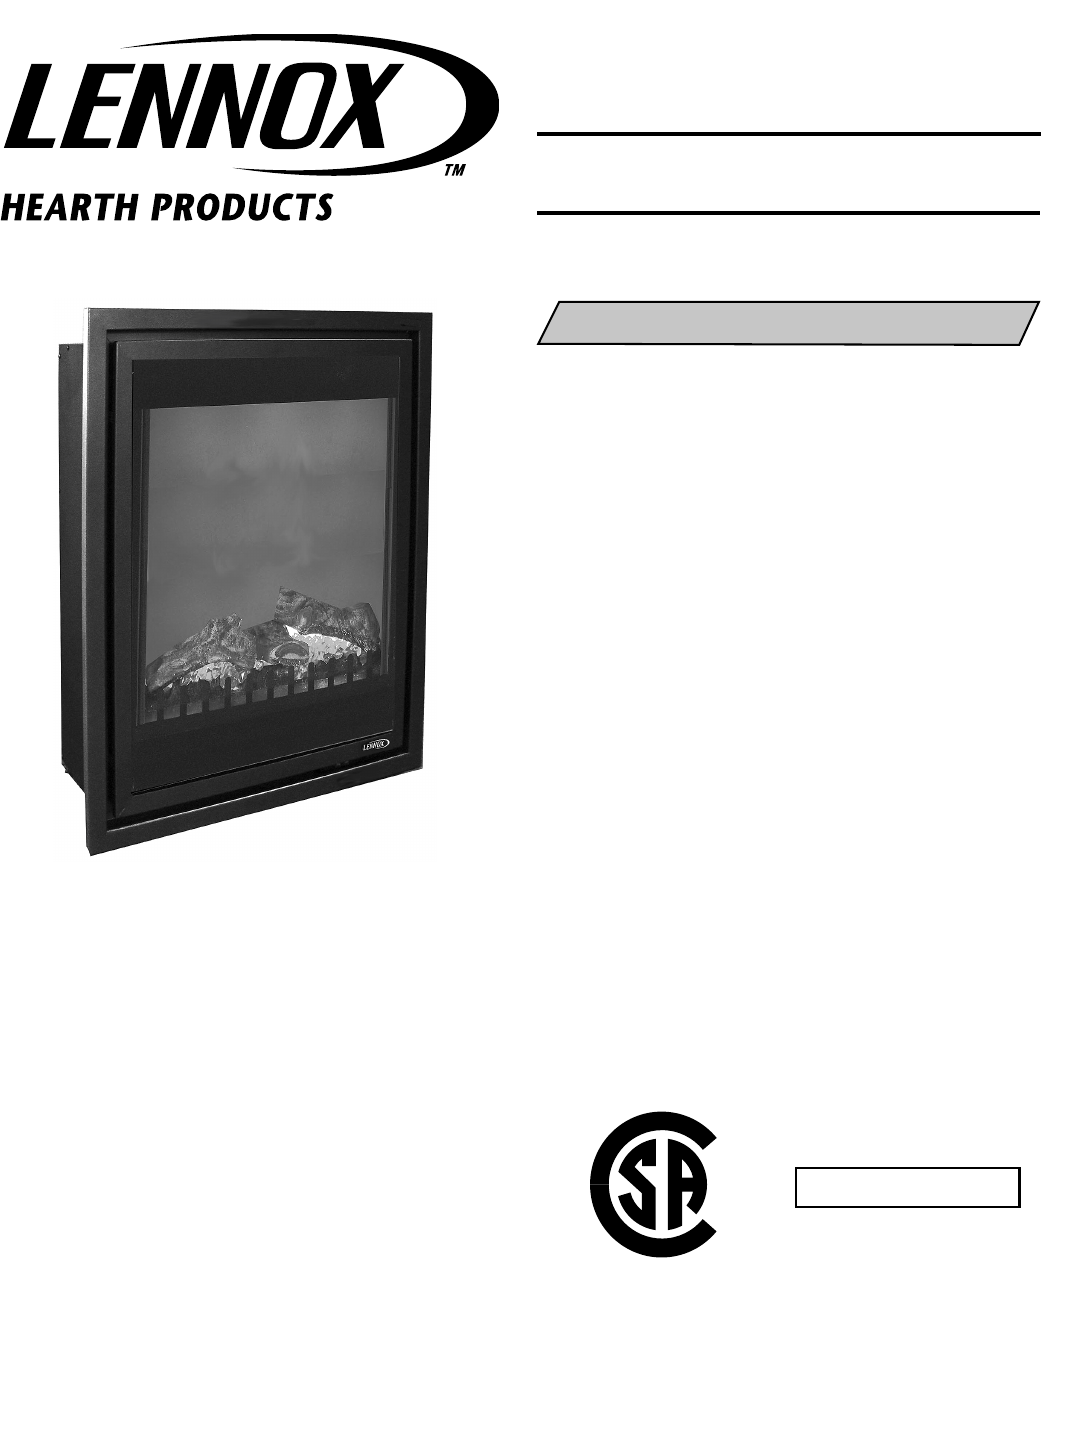 Lennox Hearth Indoor Fireplace MPE 27 User Guide